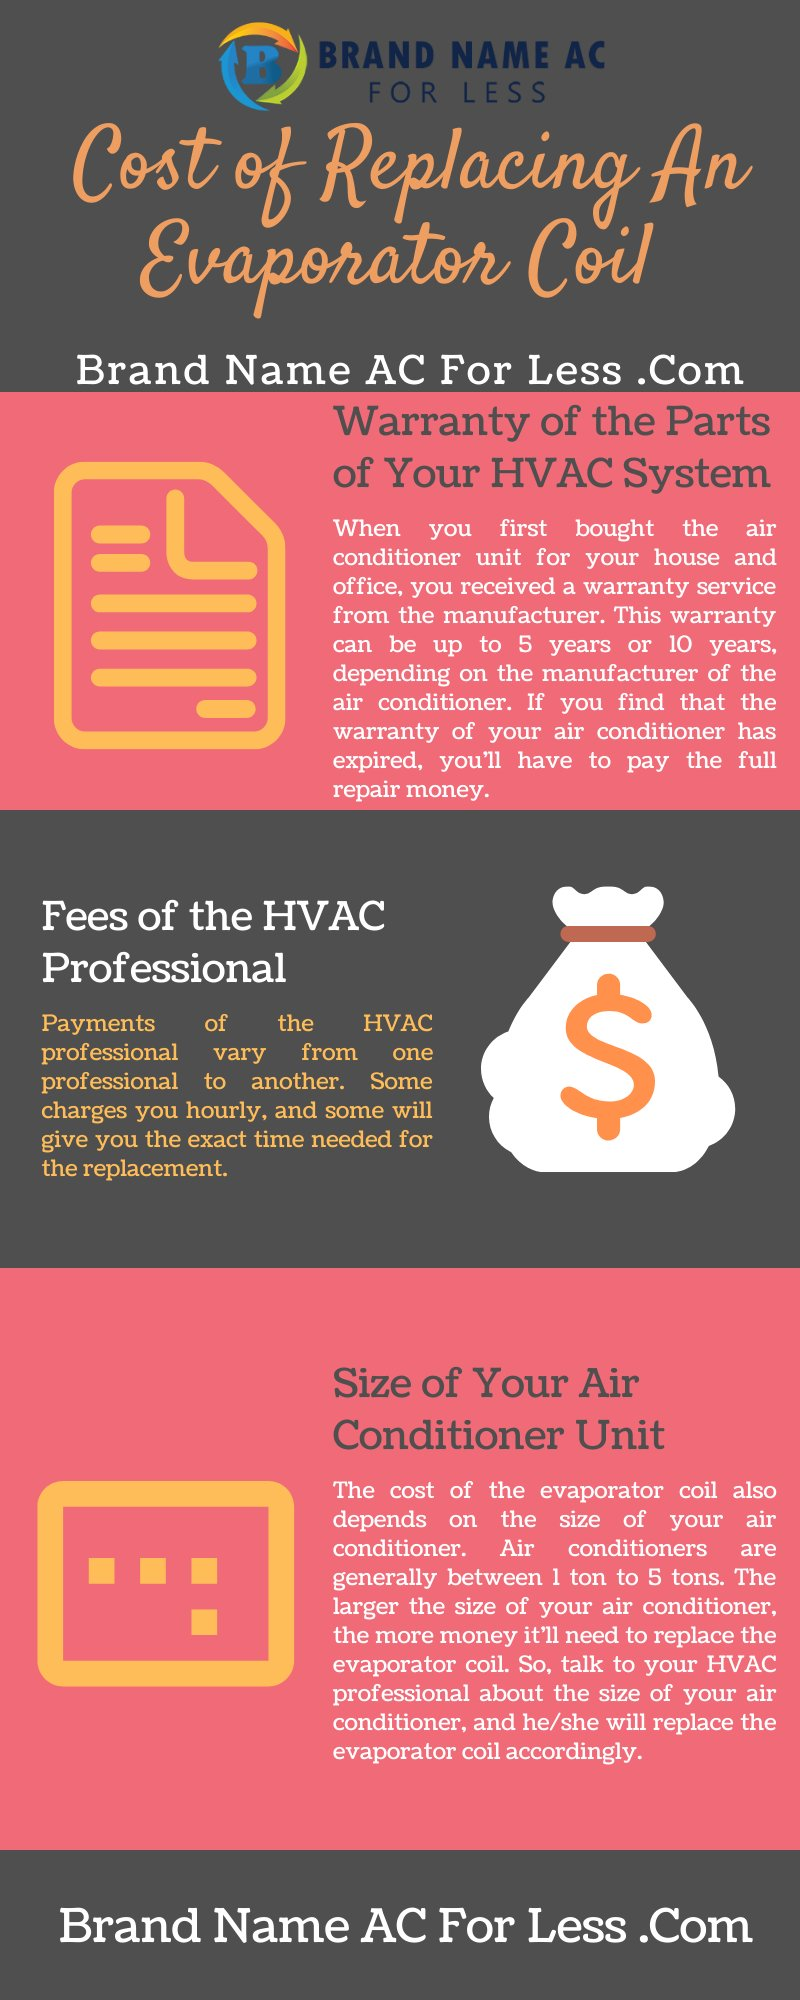 How Much Does It Cost to Evaporator Coil?